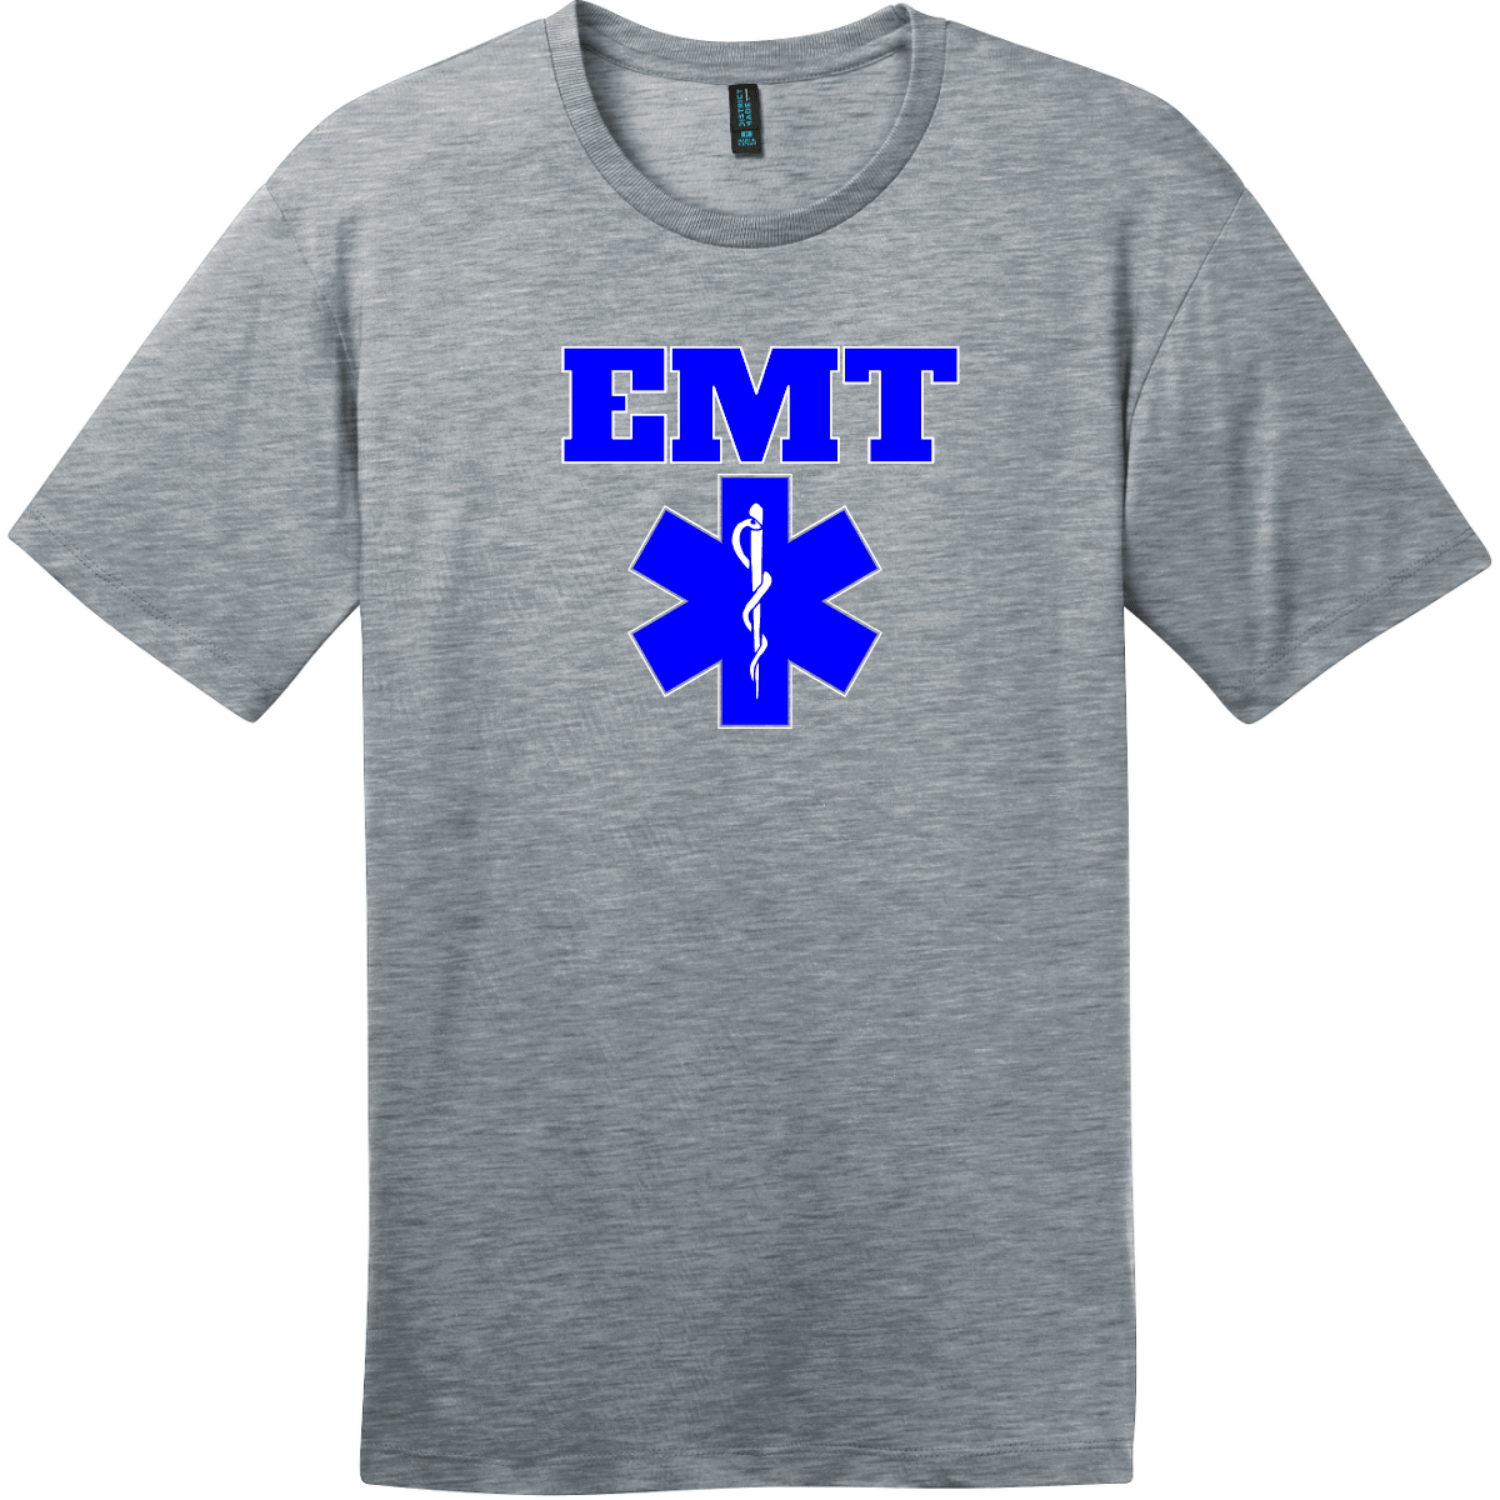 EMT Emergency Medical Technician T-Shirt Heathered Steel District Perfect Weight Tee DT104